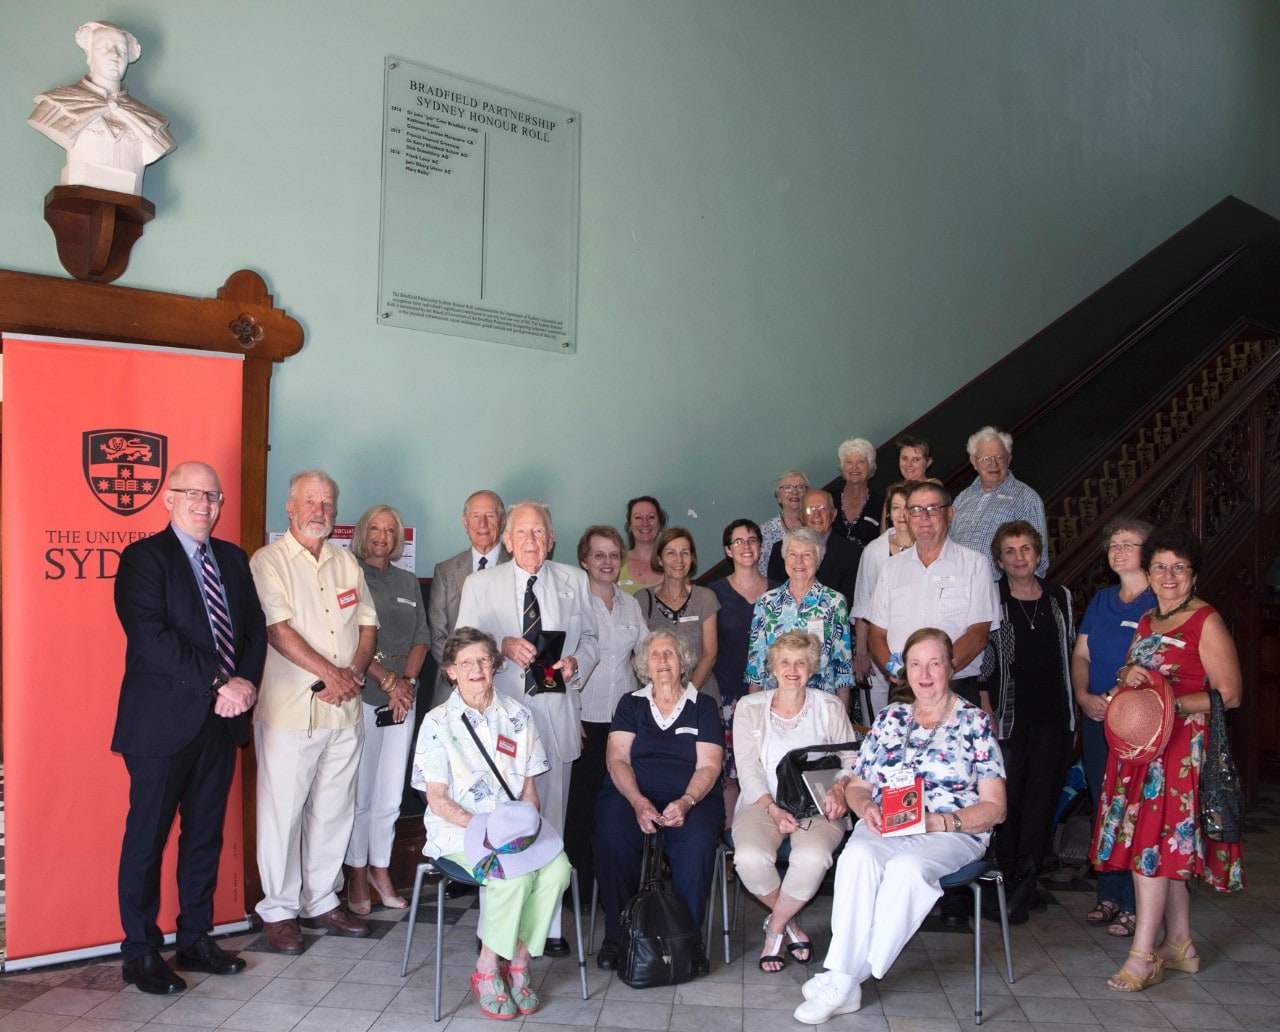 More than 25 descendants of Mary Reibey visiting the Sydney Honour Roll featuring her name at the University of Sydney.